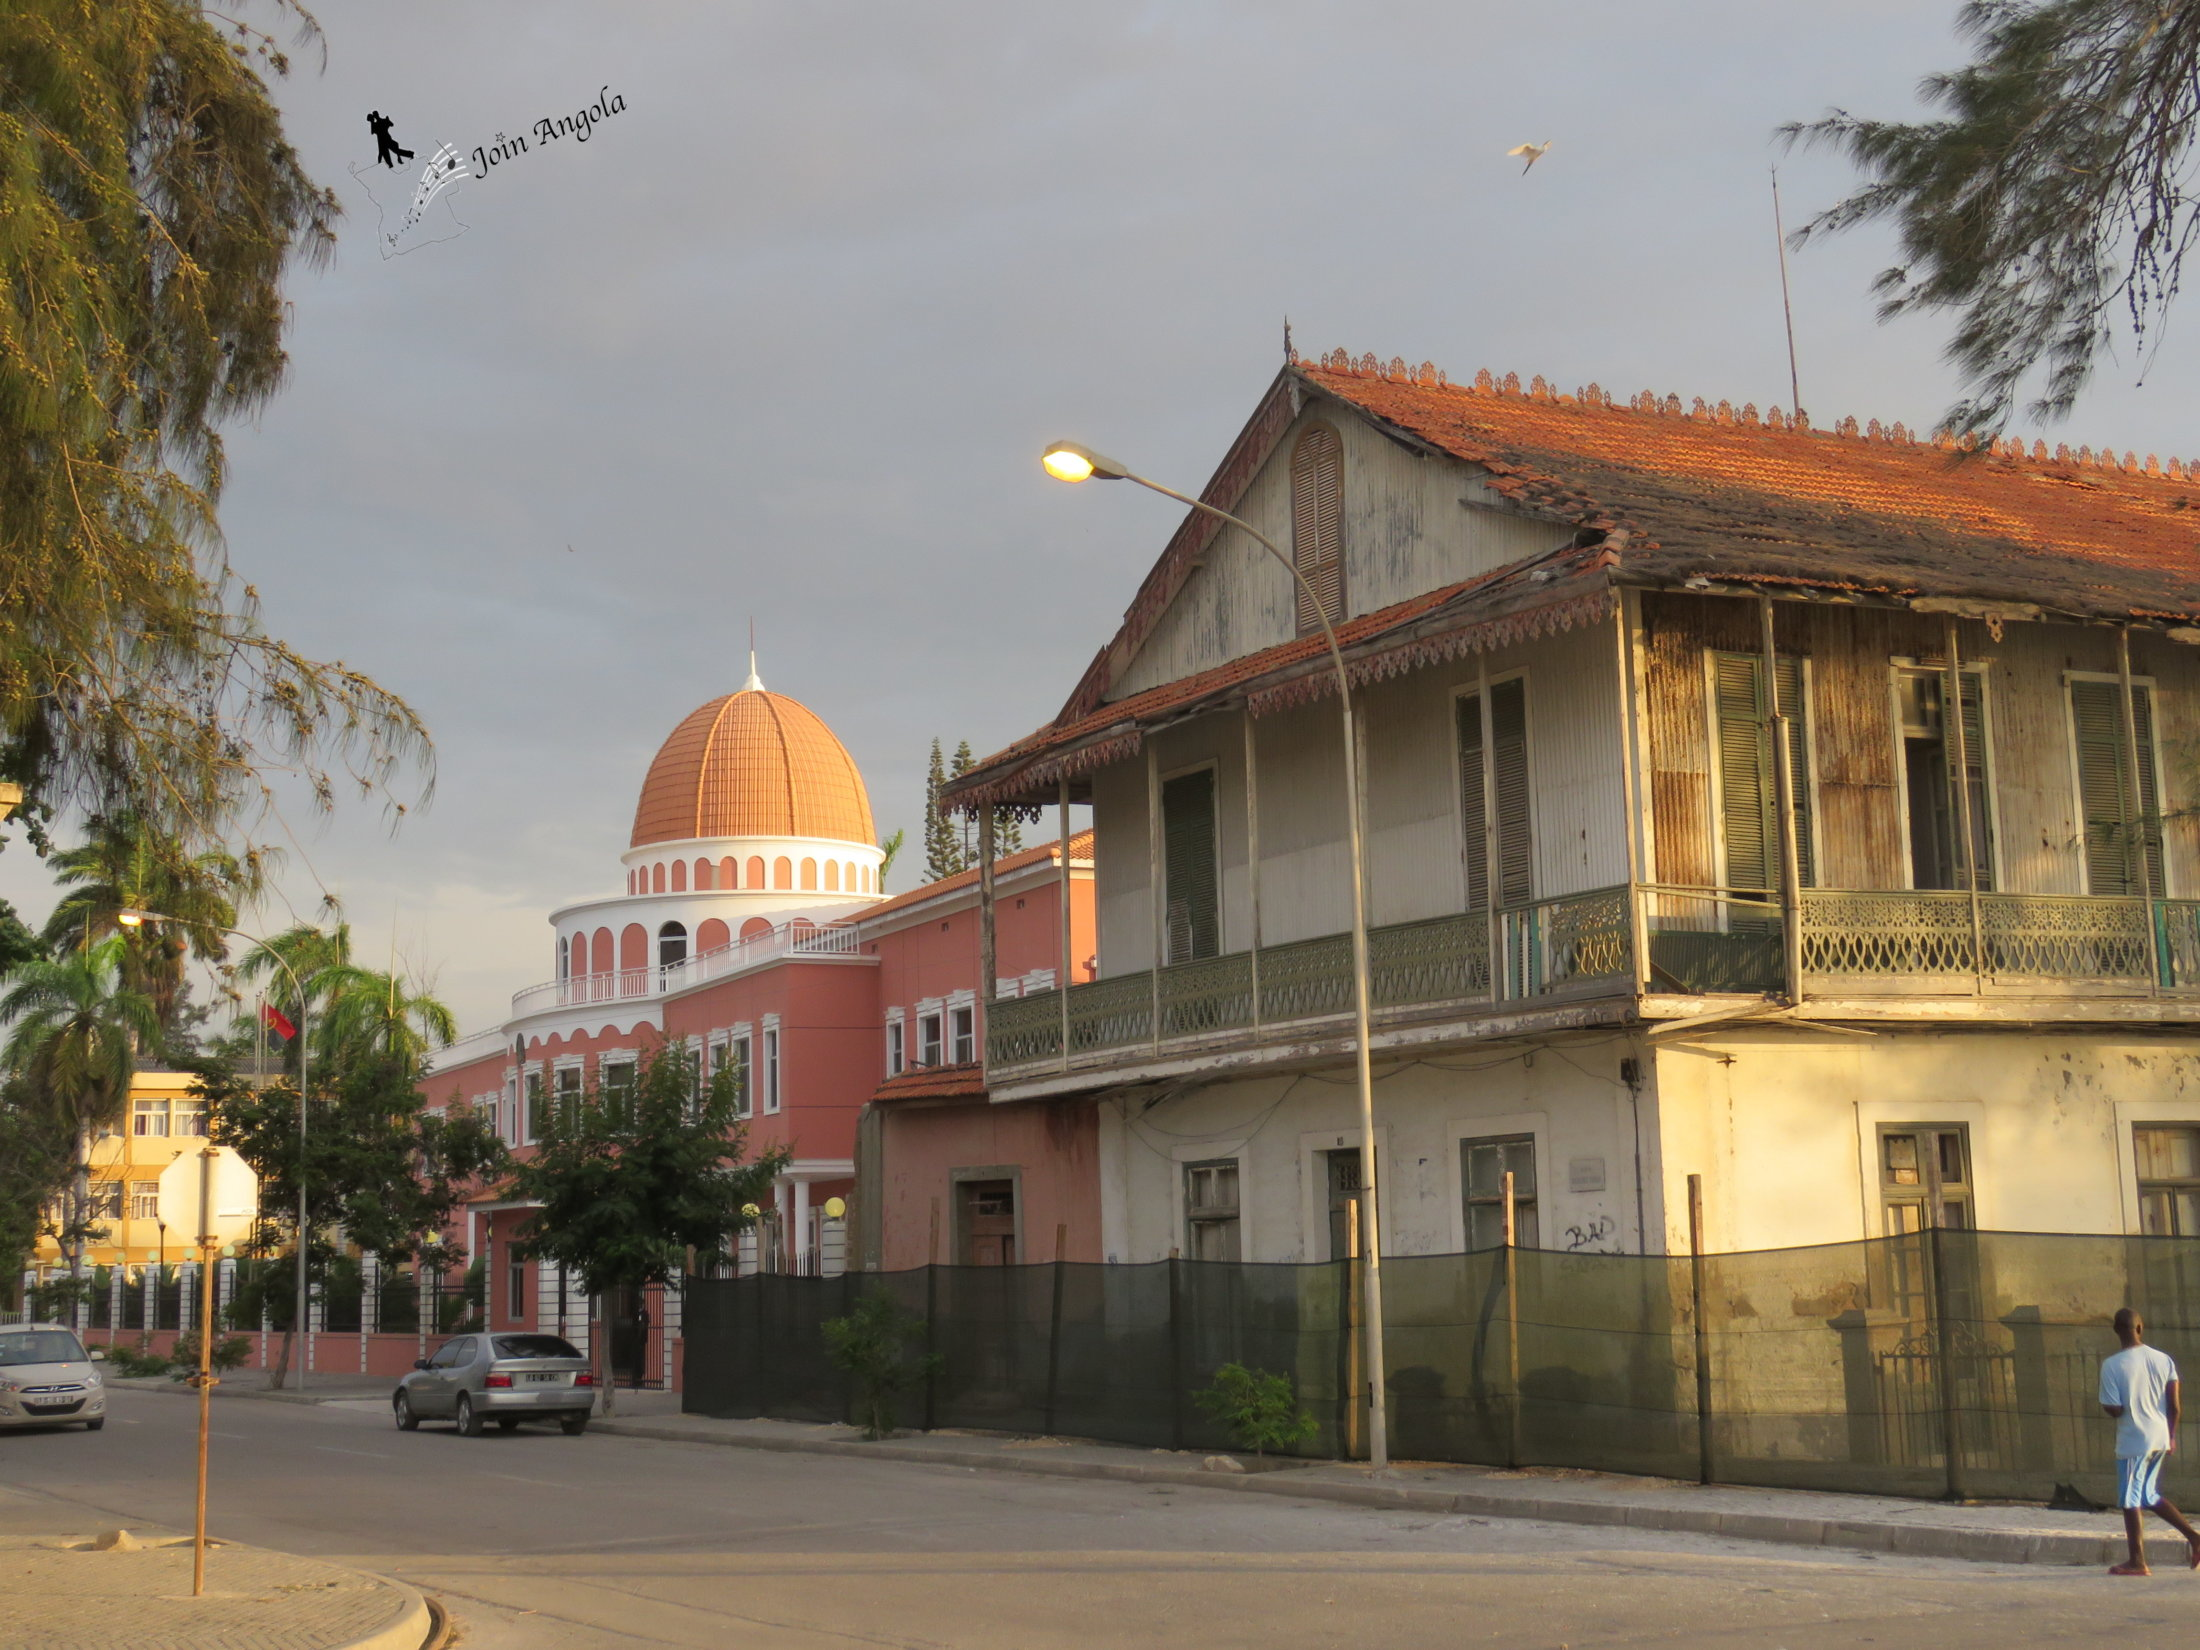 The local office of the Parliament in Benguela, a replica (in smaller size) of the building where the Parliament sits in Luanda. Benguela is the capital of the Benguela province, and it has about 513.441 inhabitants.